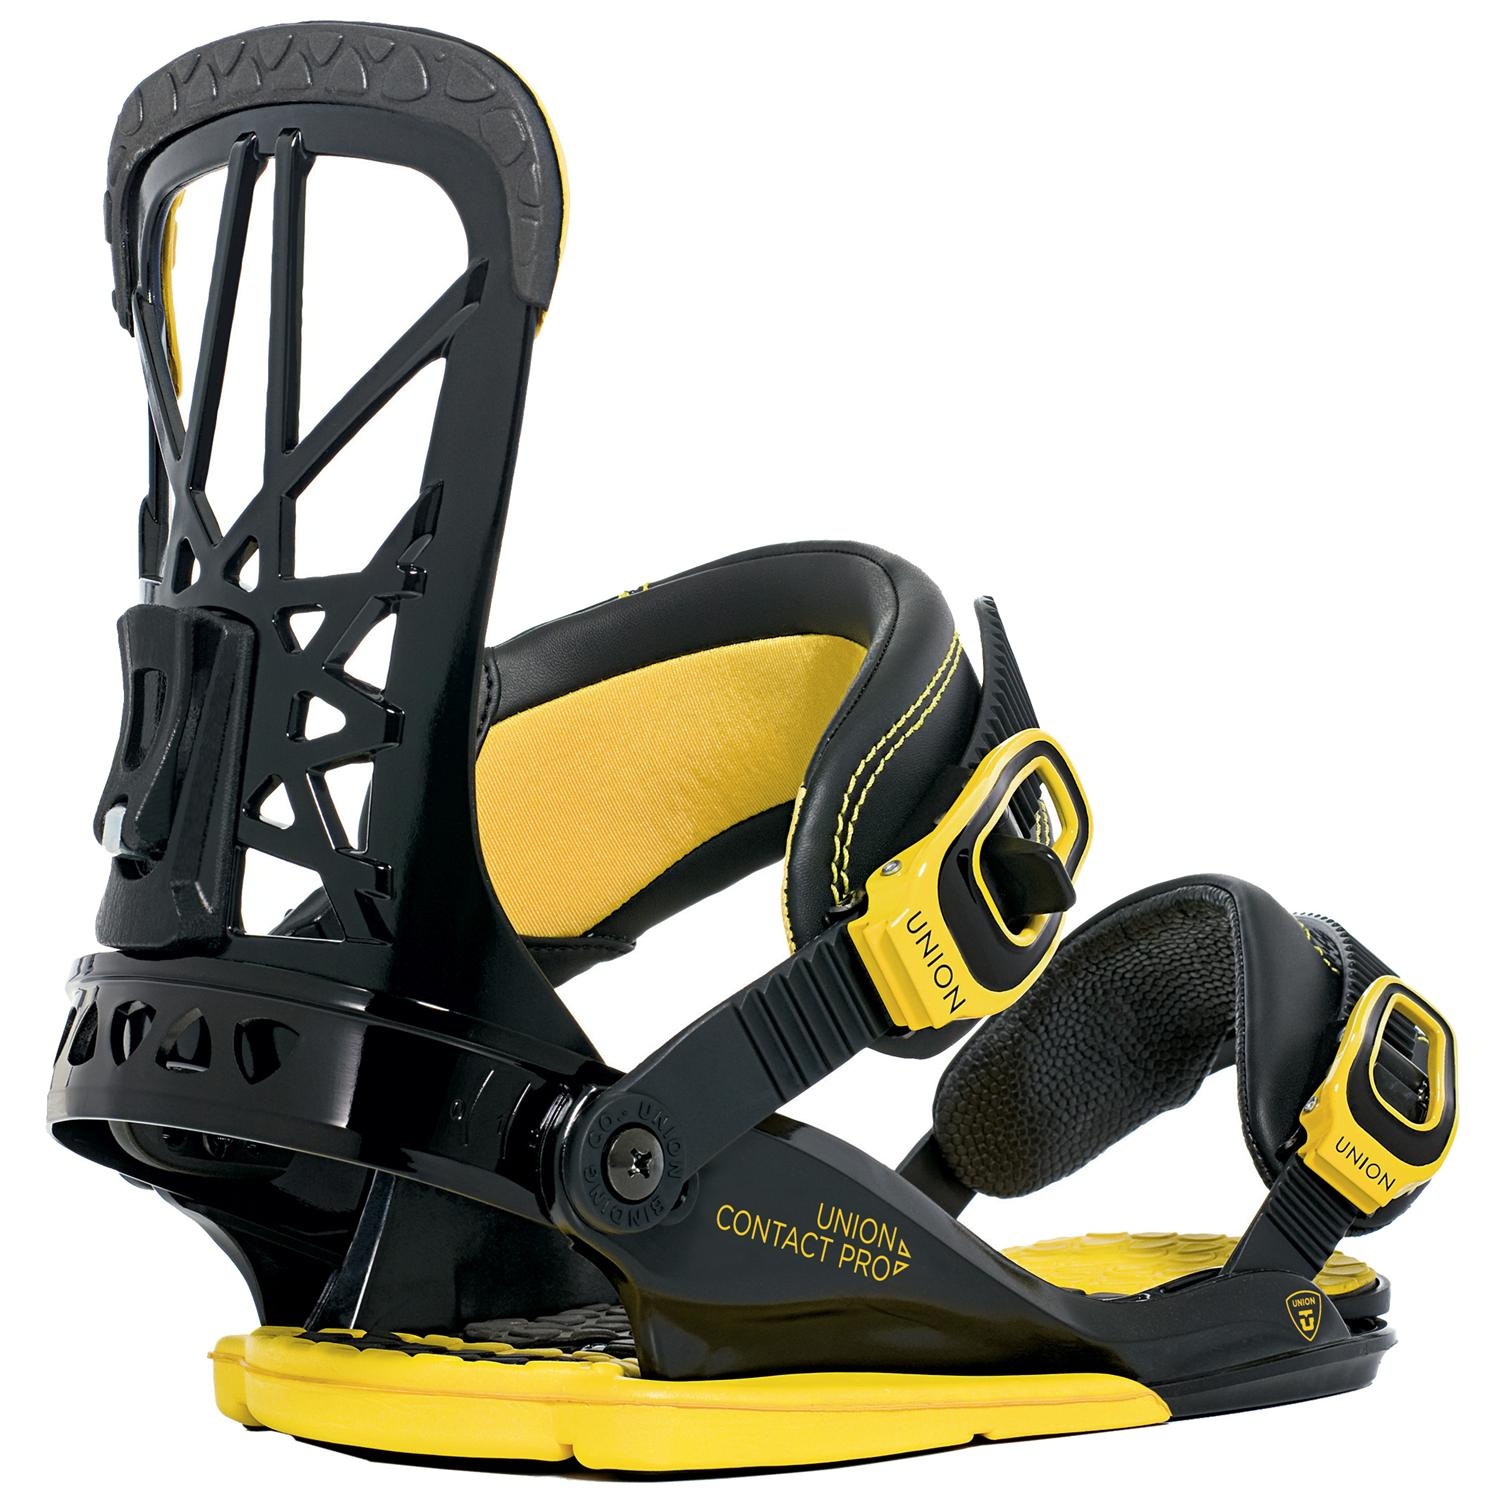 Union Contact Pro Snowboard Bindings 2011